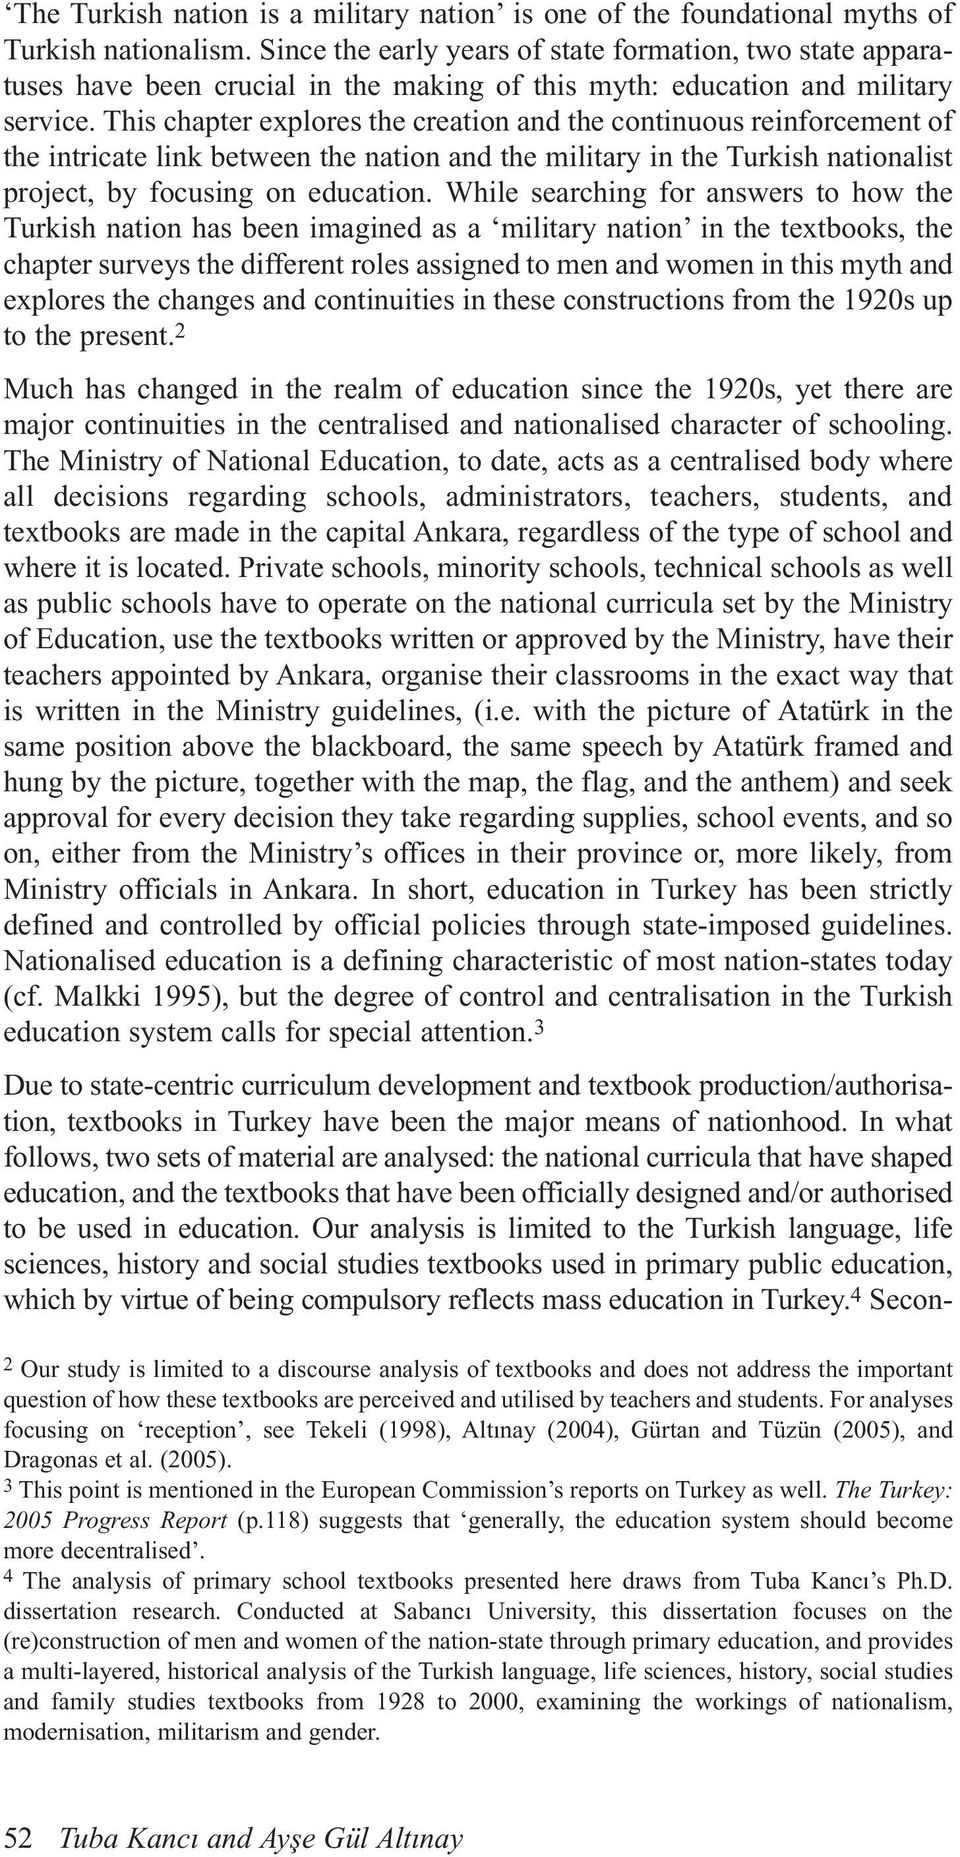 This chapter explores the creation and the continuous reinforcement of the intricate link between the nation and the military in the Turkish nationalist project, by focusing on education.